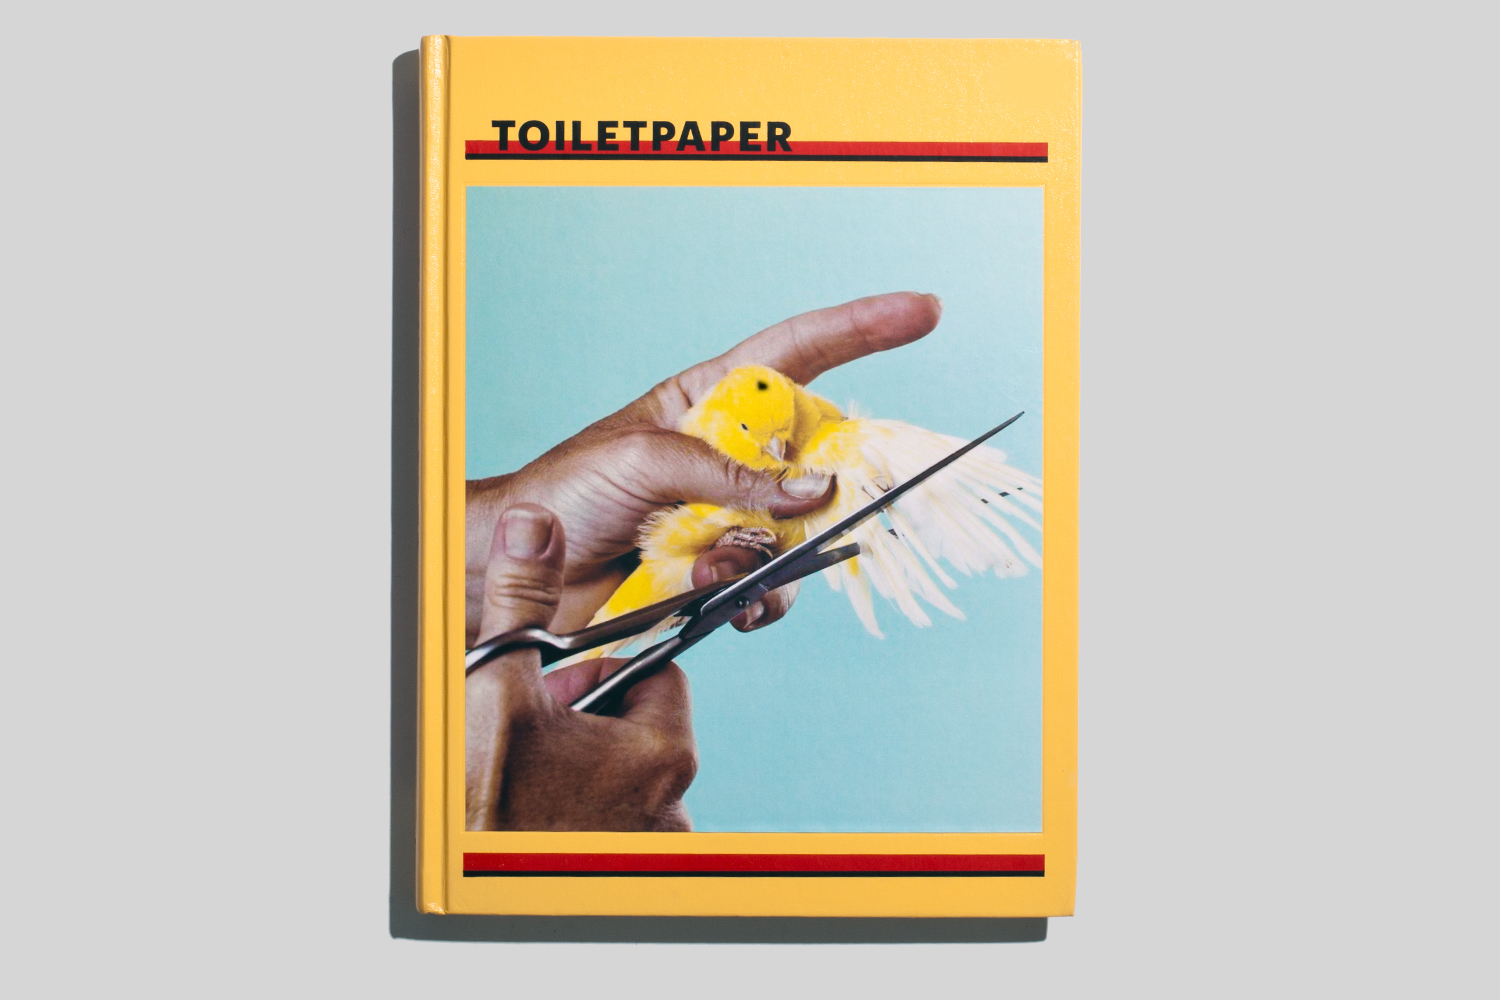 Toilet Paper by Maurizio Cattelan, selected by Alexander Ho, photo editor, special projects, TIME.com